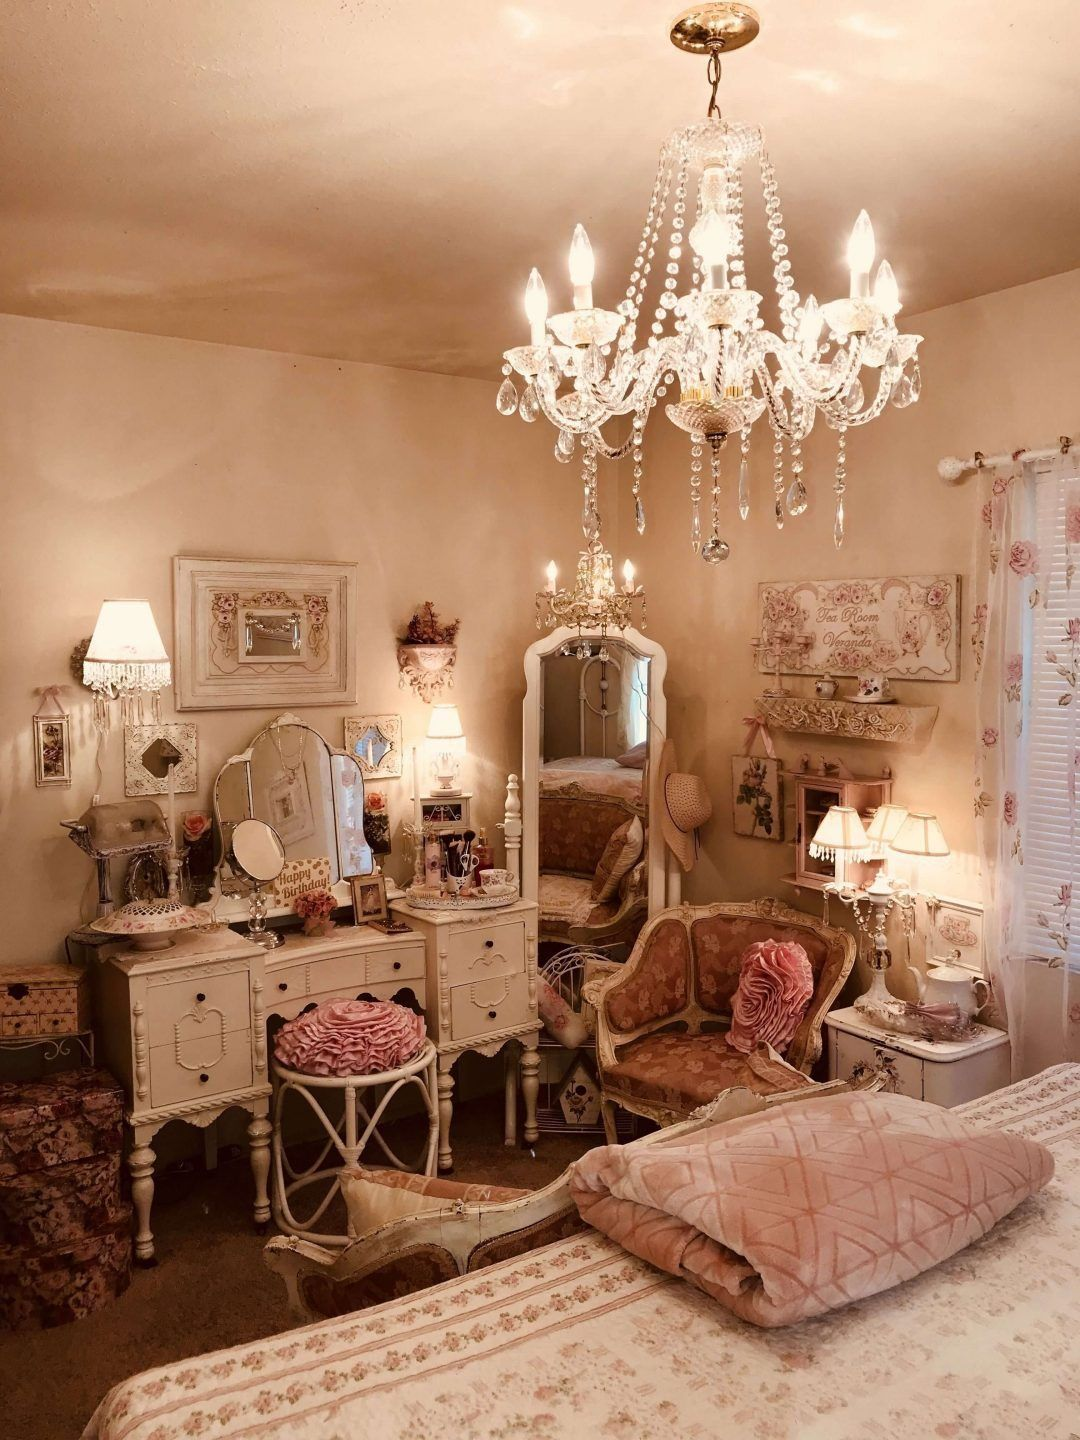 25 Fashionable Shabby Chic Bedroom (All Are Stylish!) - Q2